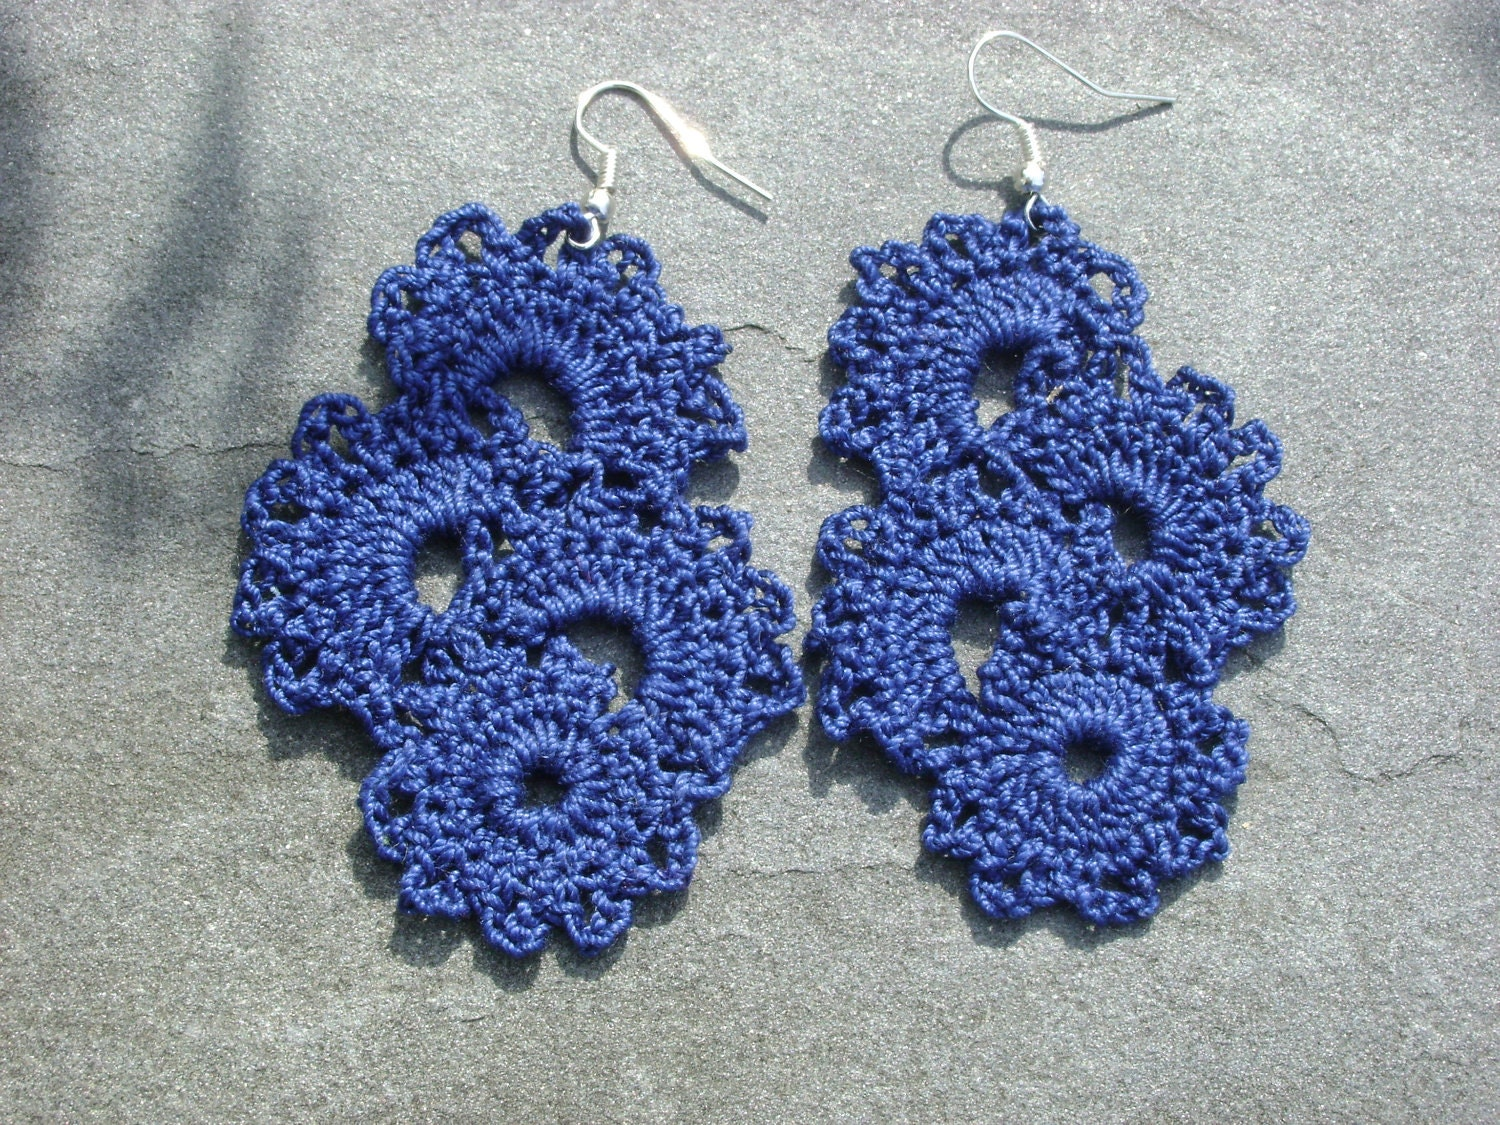 Crochet Earrings : Reserved For Brittany Blue Crochet Earrings by EclectionsGifts